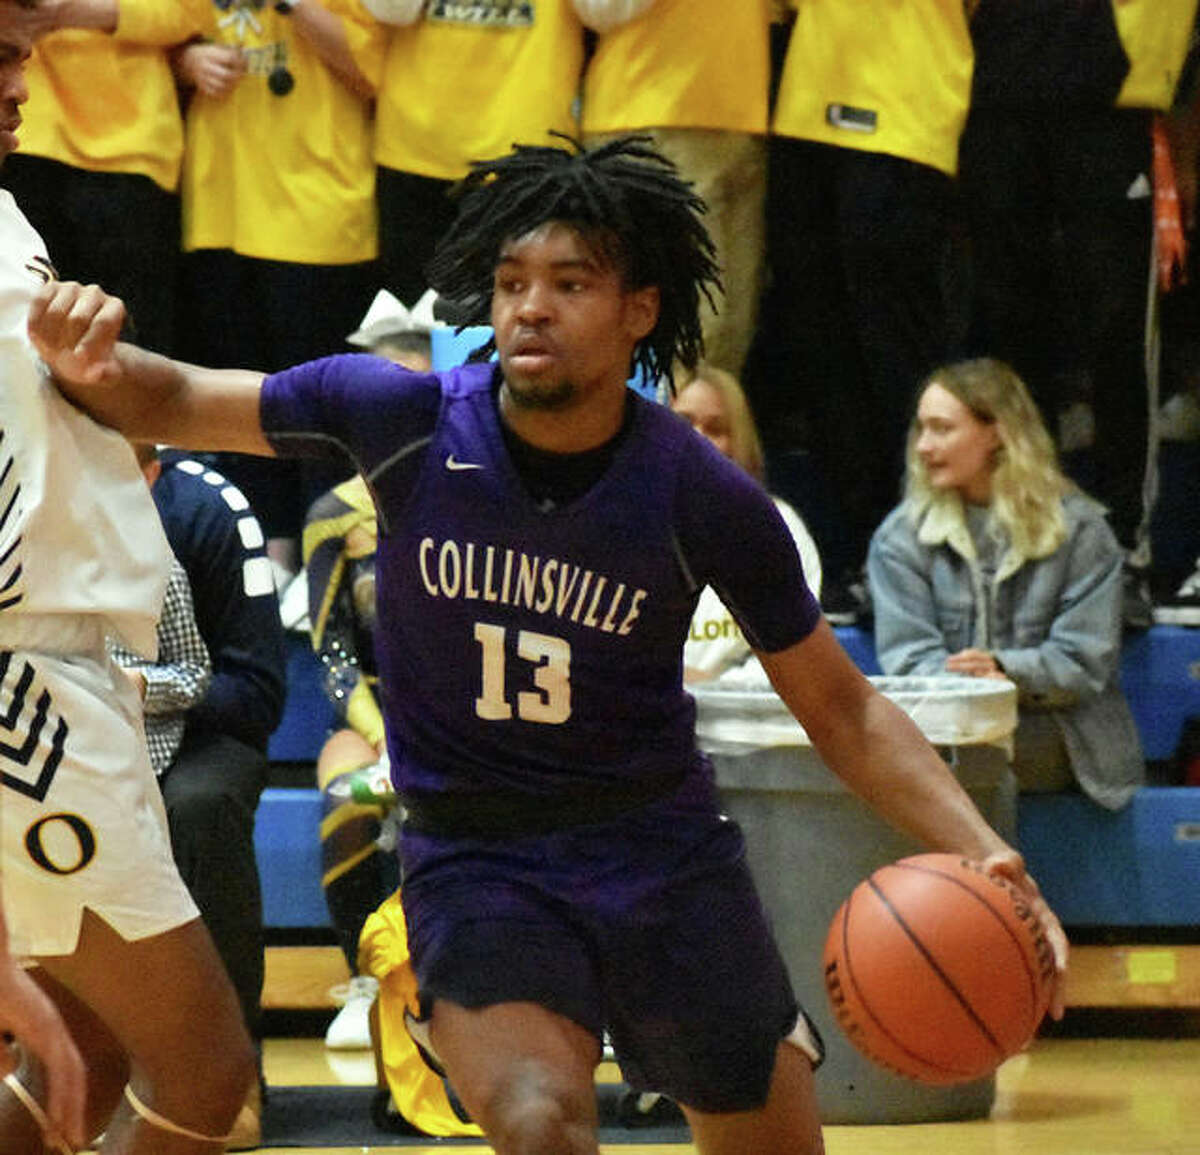 Collinsville senior guard Ray'Sean Taylor looks for space on the baseline during Friday's game at O'Fallon.